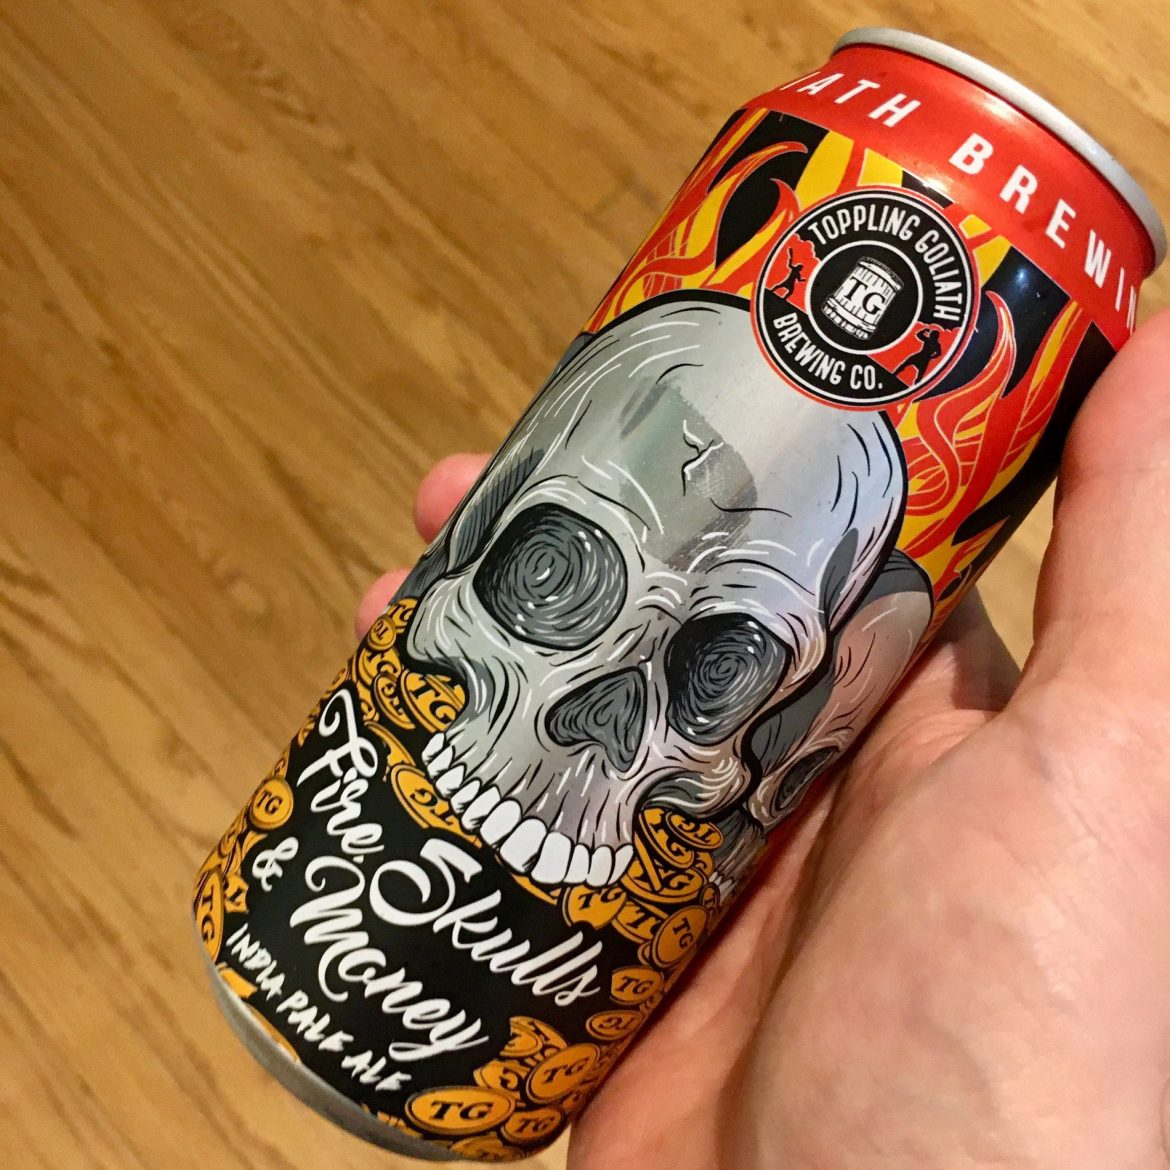 Afternoon Beer Break:  Toppling Goliath Fire, Skulls & Money